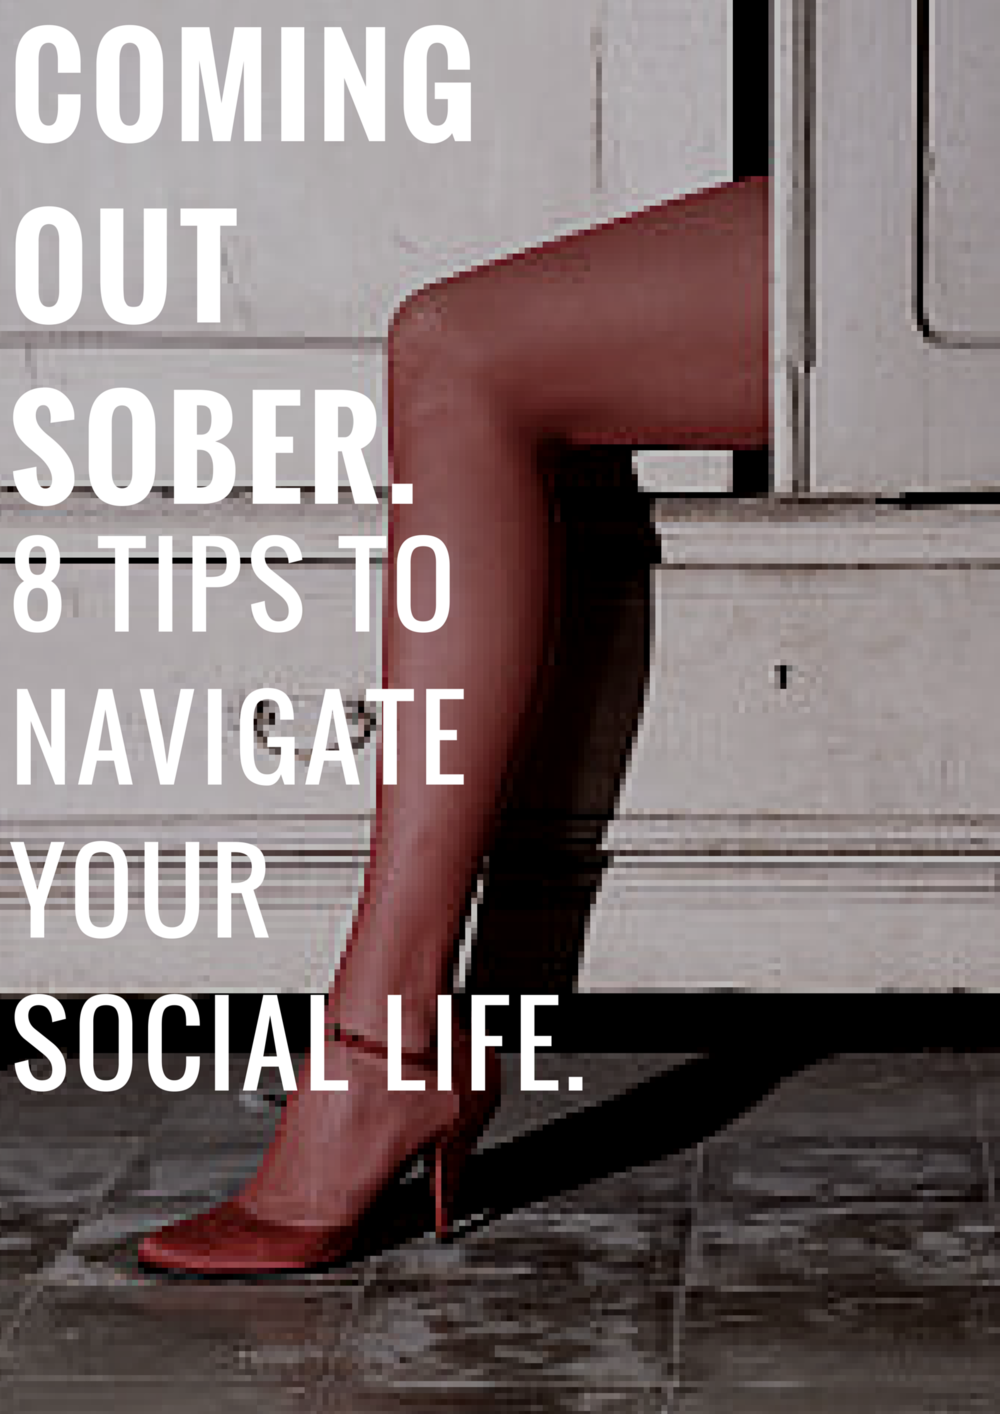 COMING OUT SOBER. 8 TIPS TO NAVIGATE YOUR SOCIAL LIFE